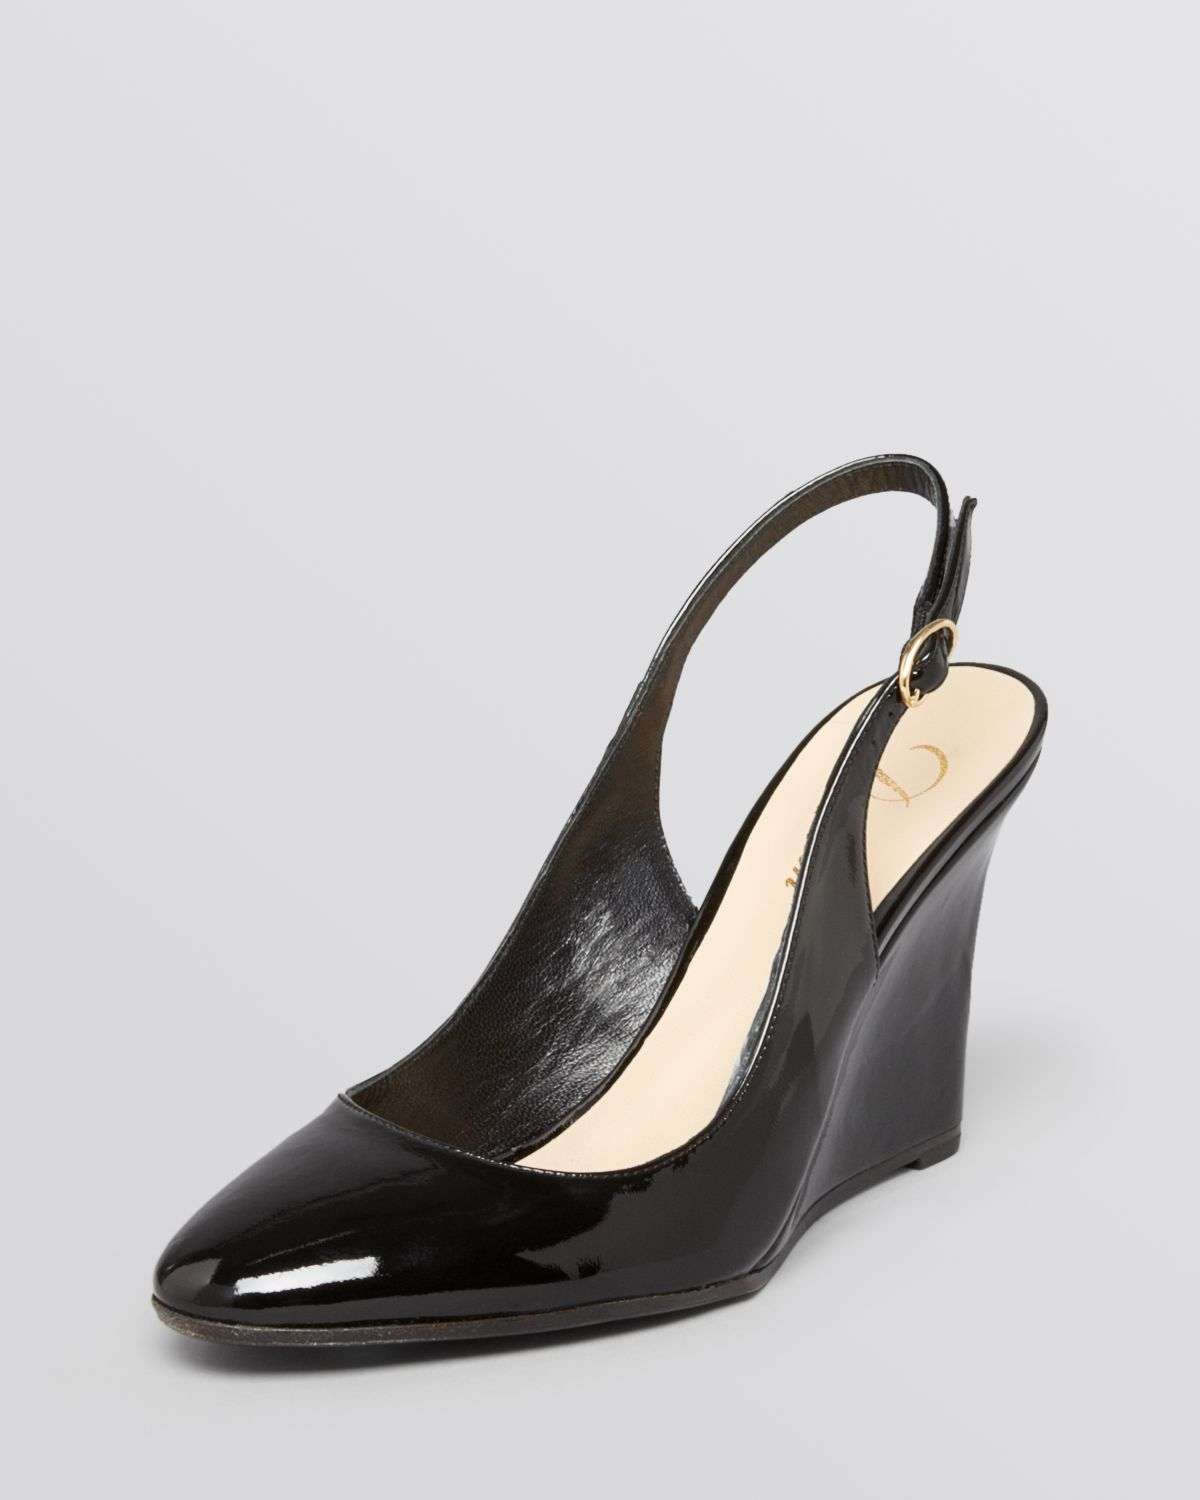 Lyst Delman Slingback Wedge Pumps Rosa In Black